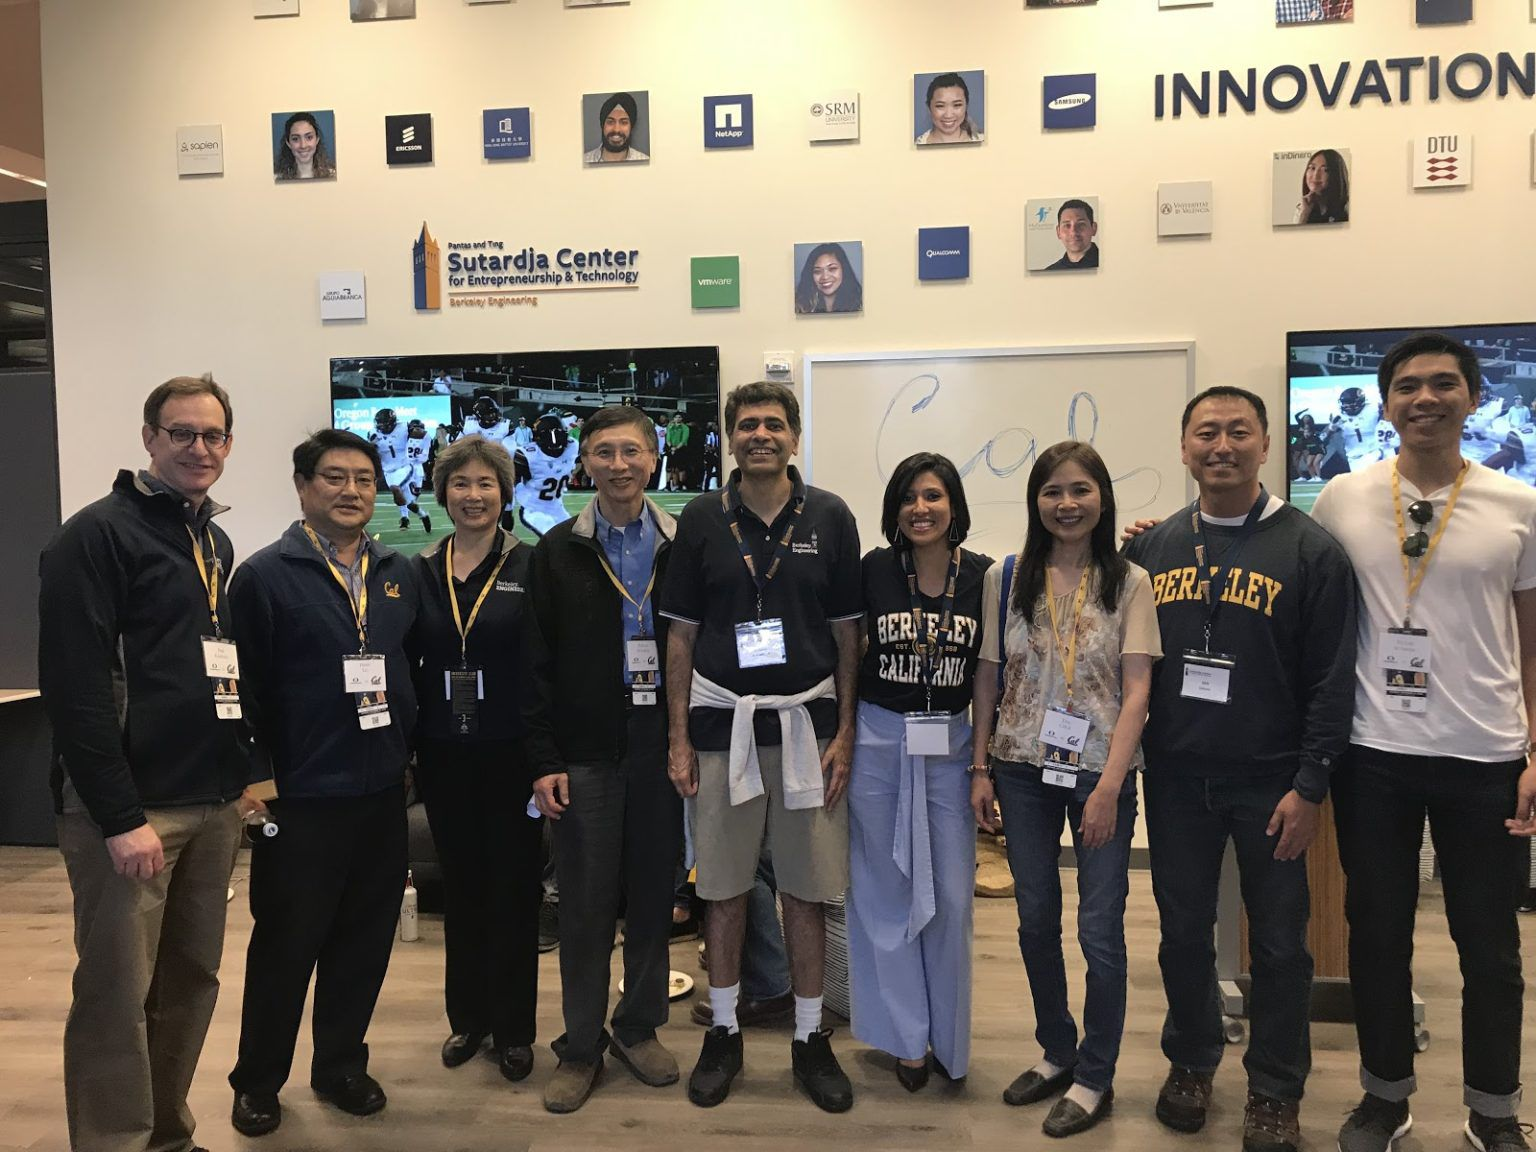 Dr. Pantas and Ting Sutardja at U.C. Berkeley Sutardja Center of Engineering & Technology (pictured 4th from the left and 3rd from right)